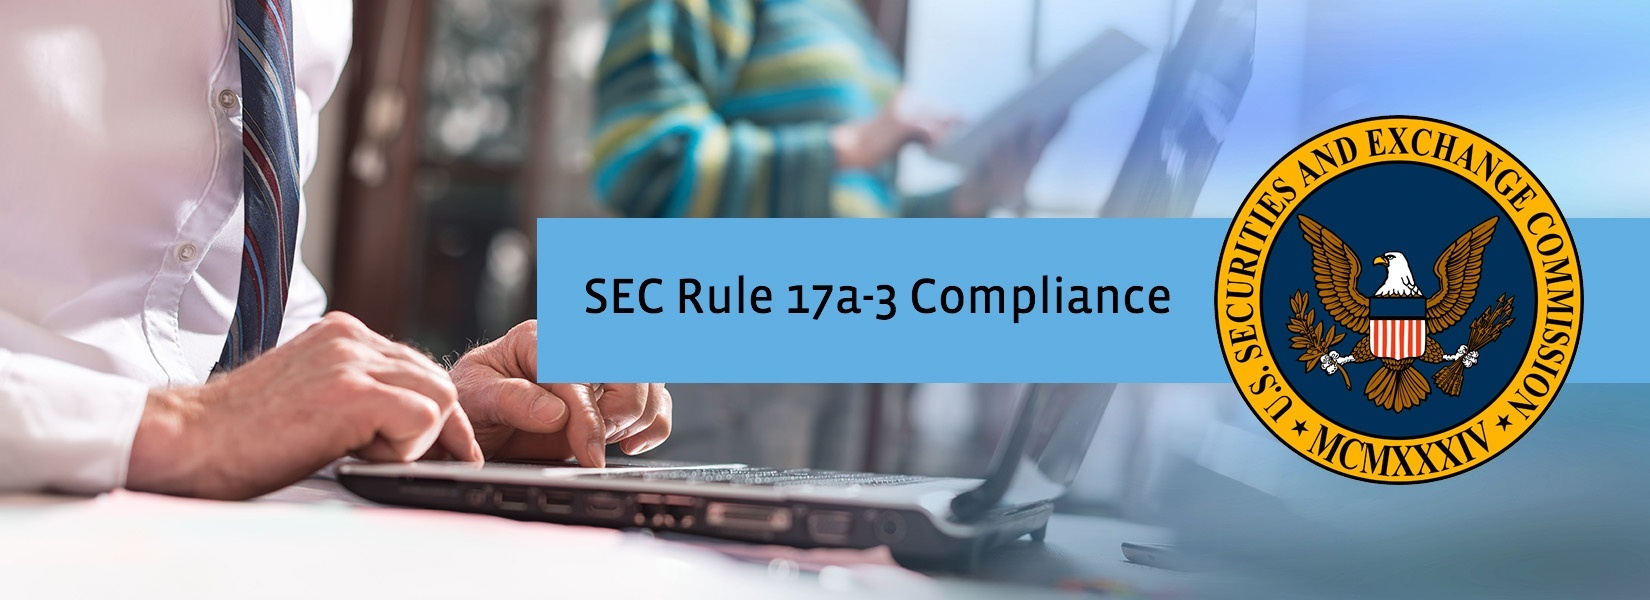 Social Media dn SEC Rule 17a-3 Compliance